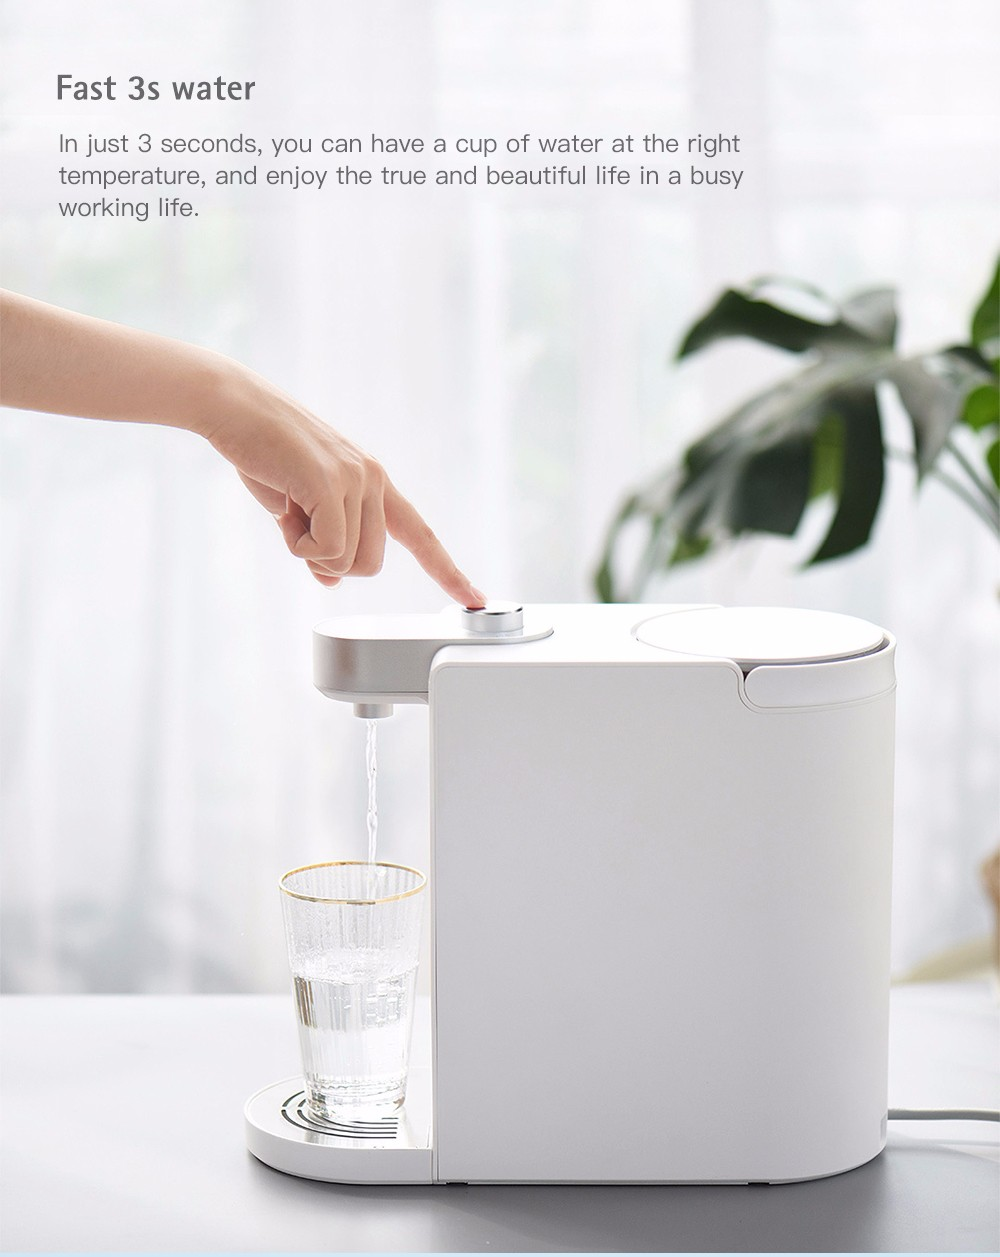 S2101 Minimalist Design Instant Heating Electric Water Dispenser from Xiaomi Youpin- White